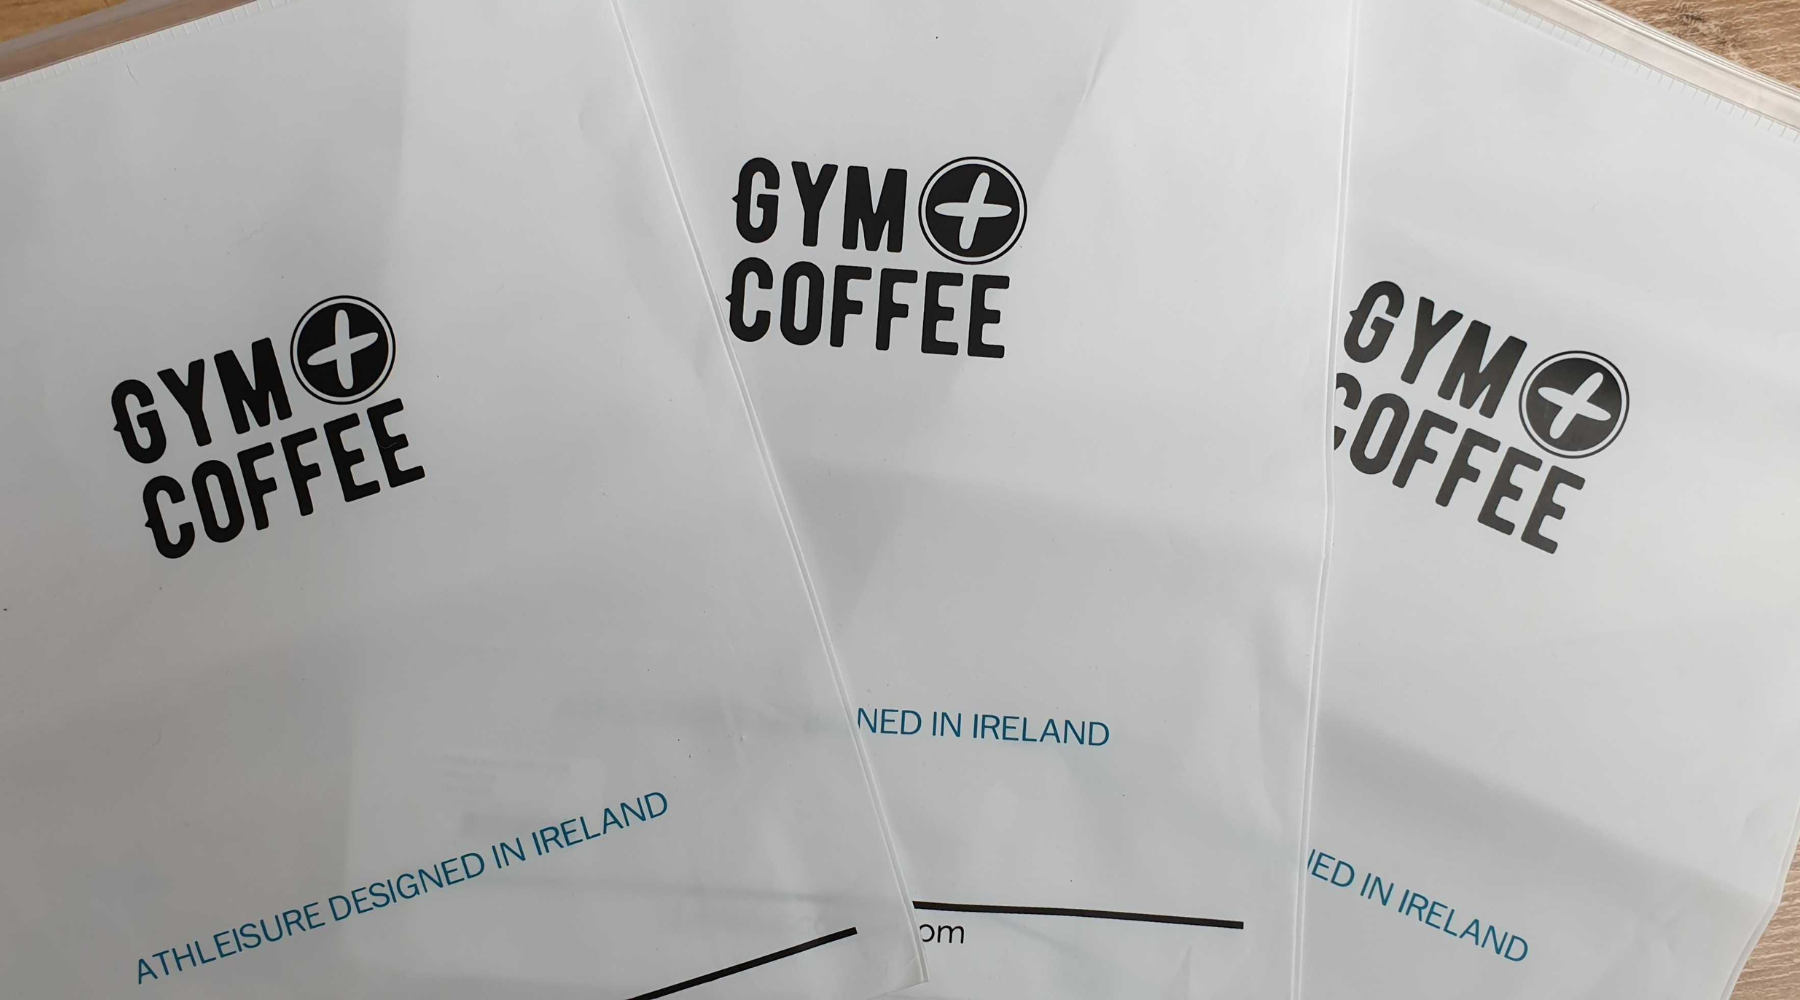 Ten ways to reuse your gym plus coffee clothing bag